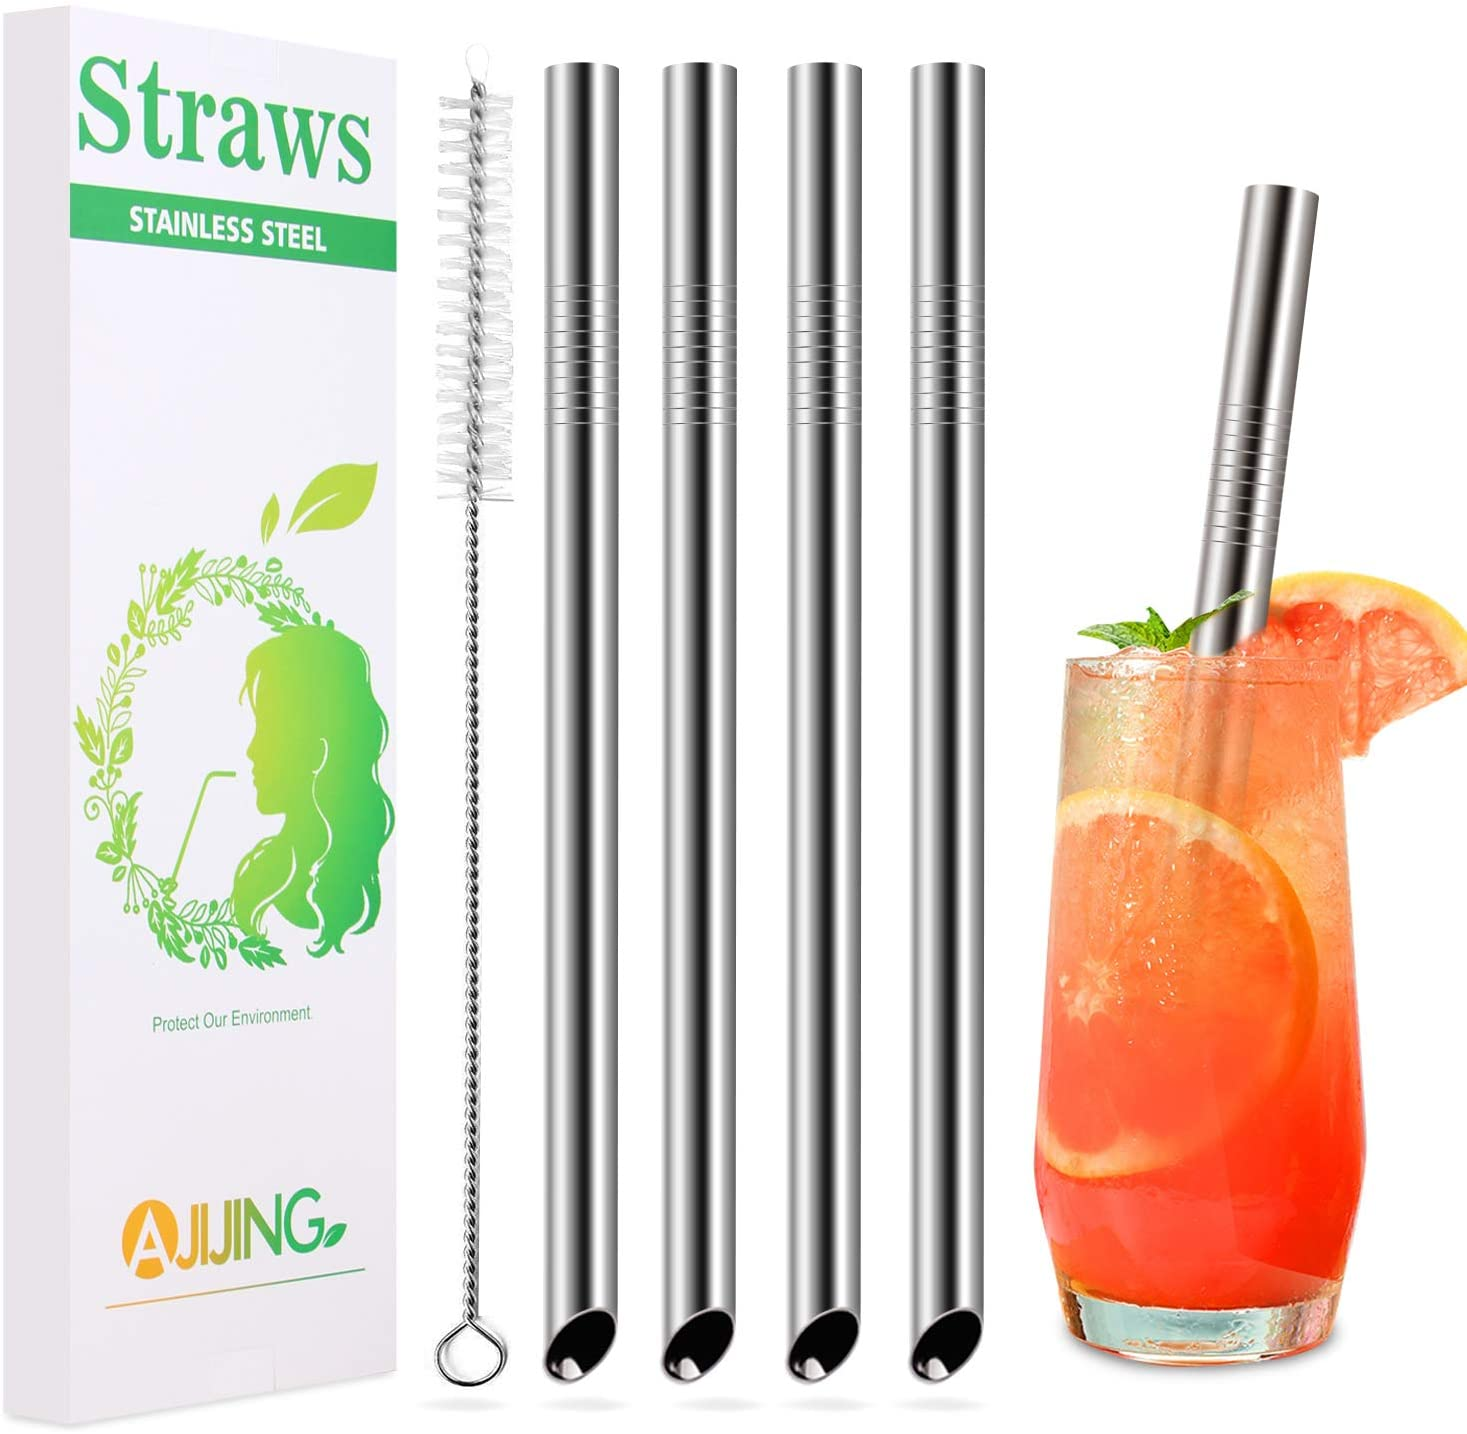 AJIJING Boba Metal Straws, 4PCS Reusable Stainless Steel Drinking Smoothie Straws 8.5/9.5 Inch Long and 0.5 Inch Wide with Case and Cleaning Brush for Milkshake,Buttle Tea and Homemade Thick Drinks